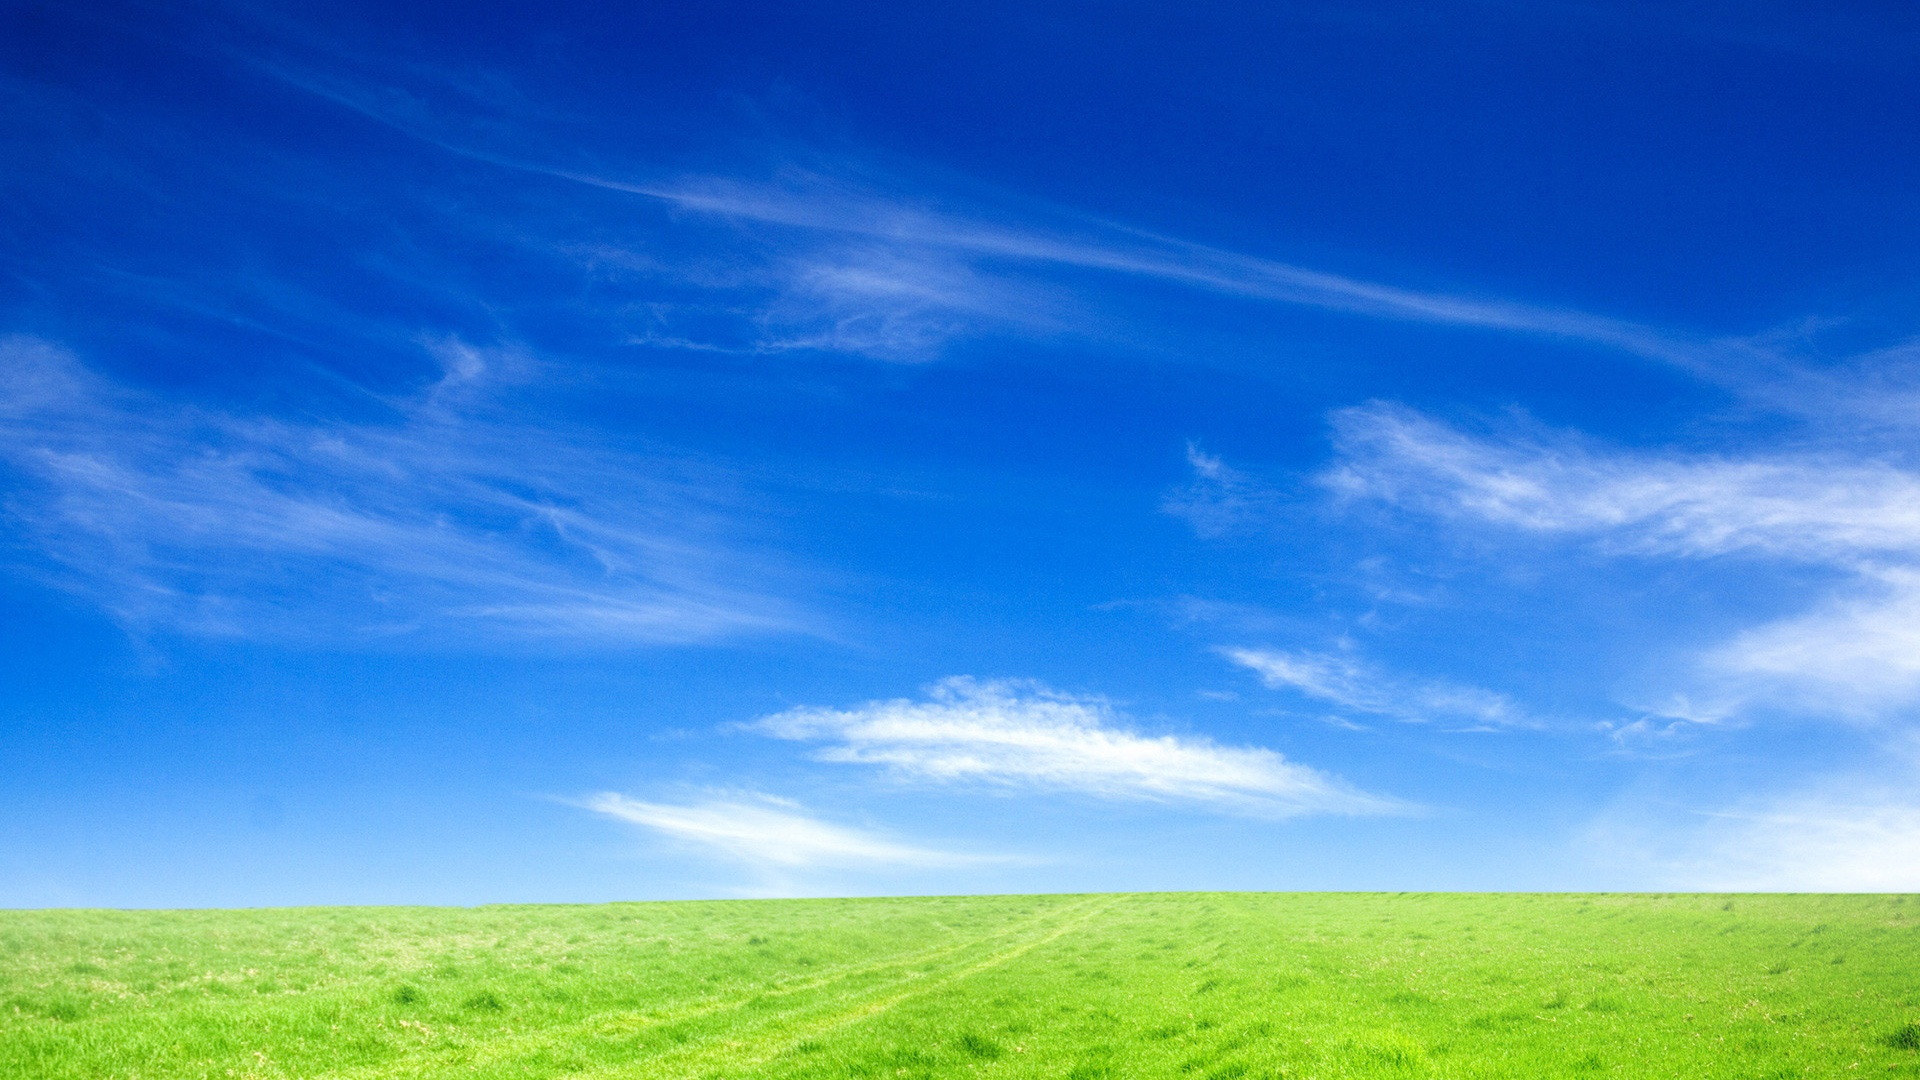 Wallpaper Download Alone Girl Blue Sky And Green Grass Wallpapers In Jpg Format For Free